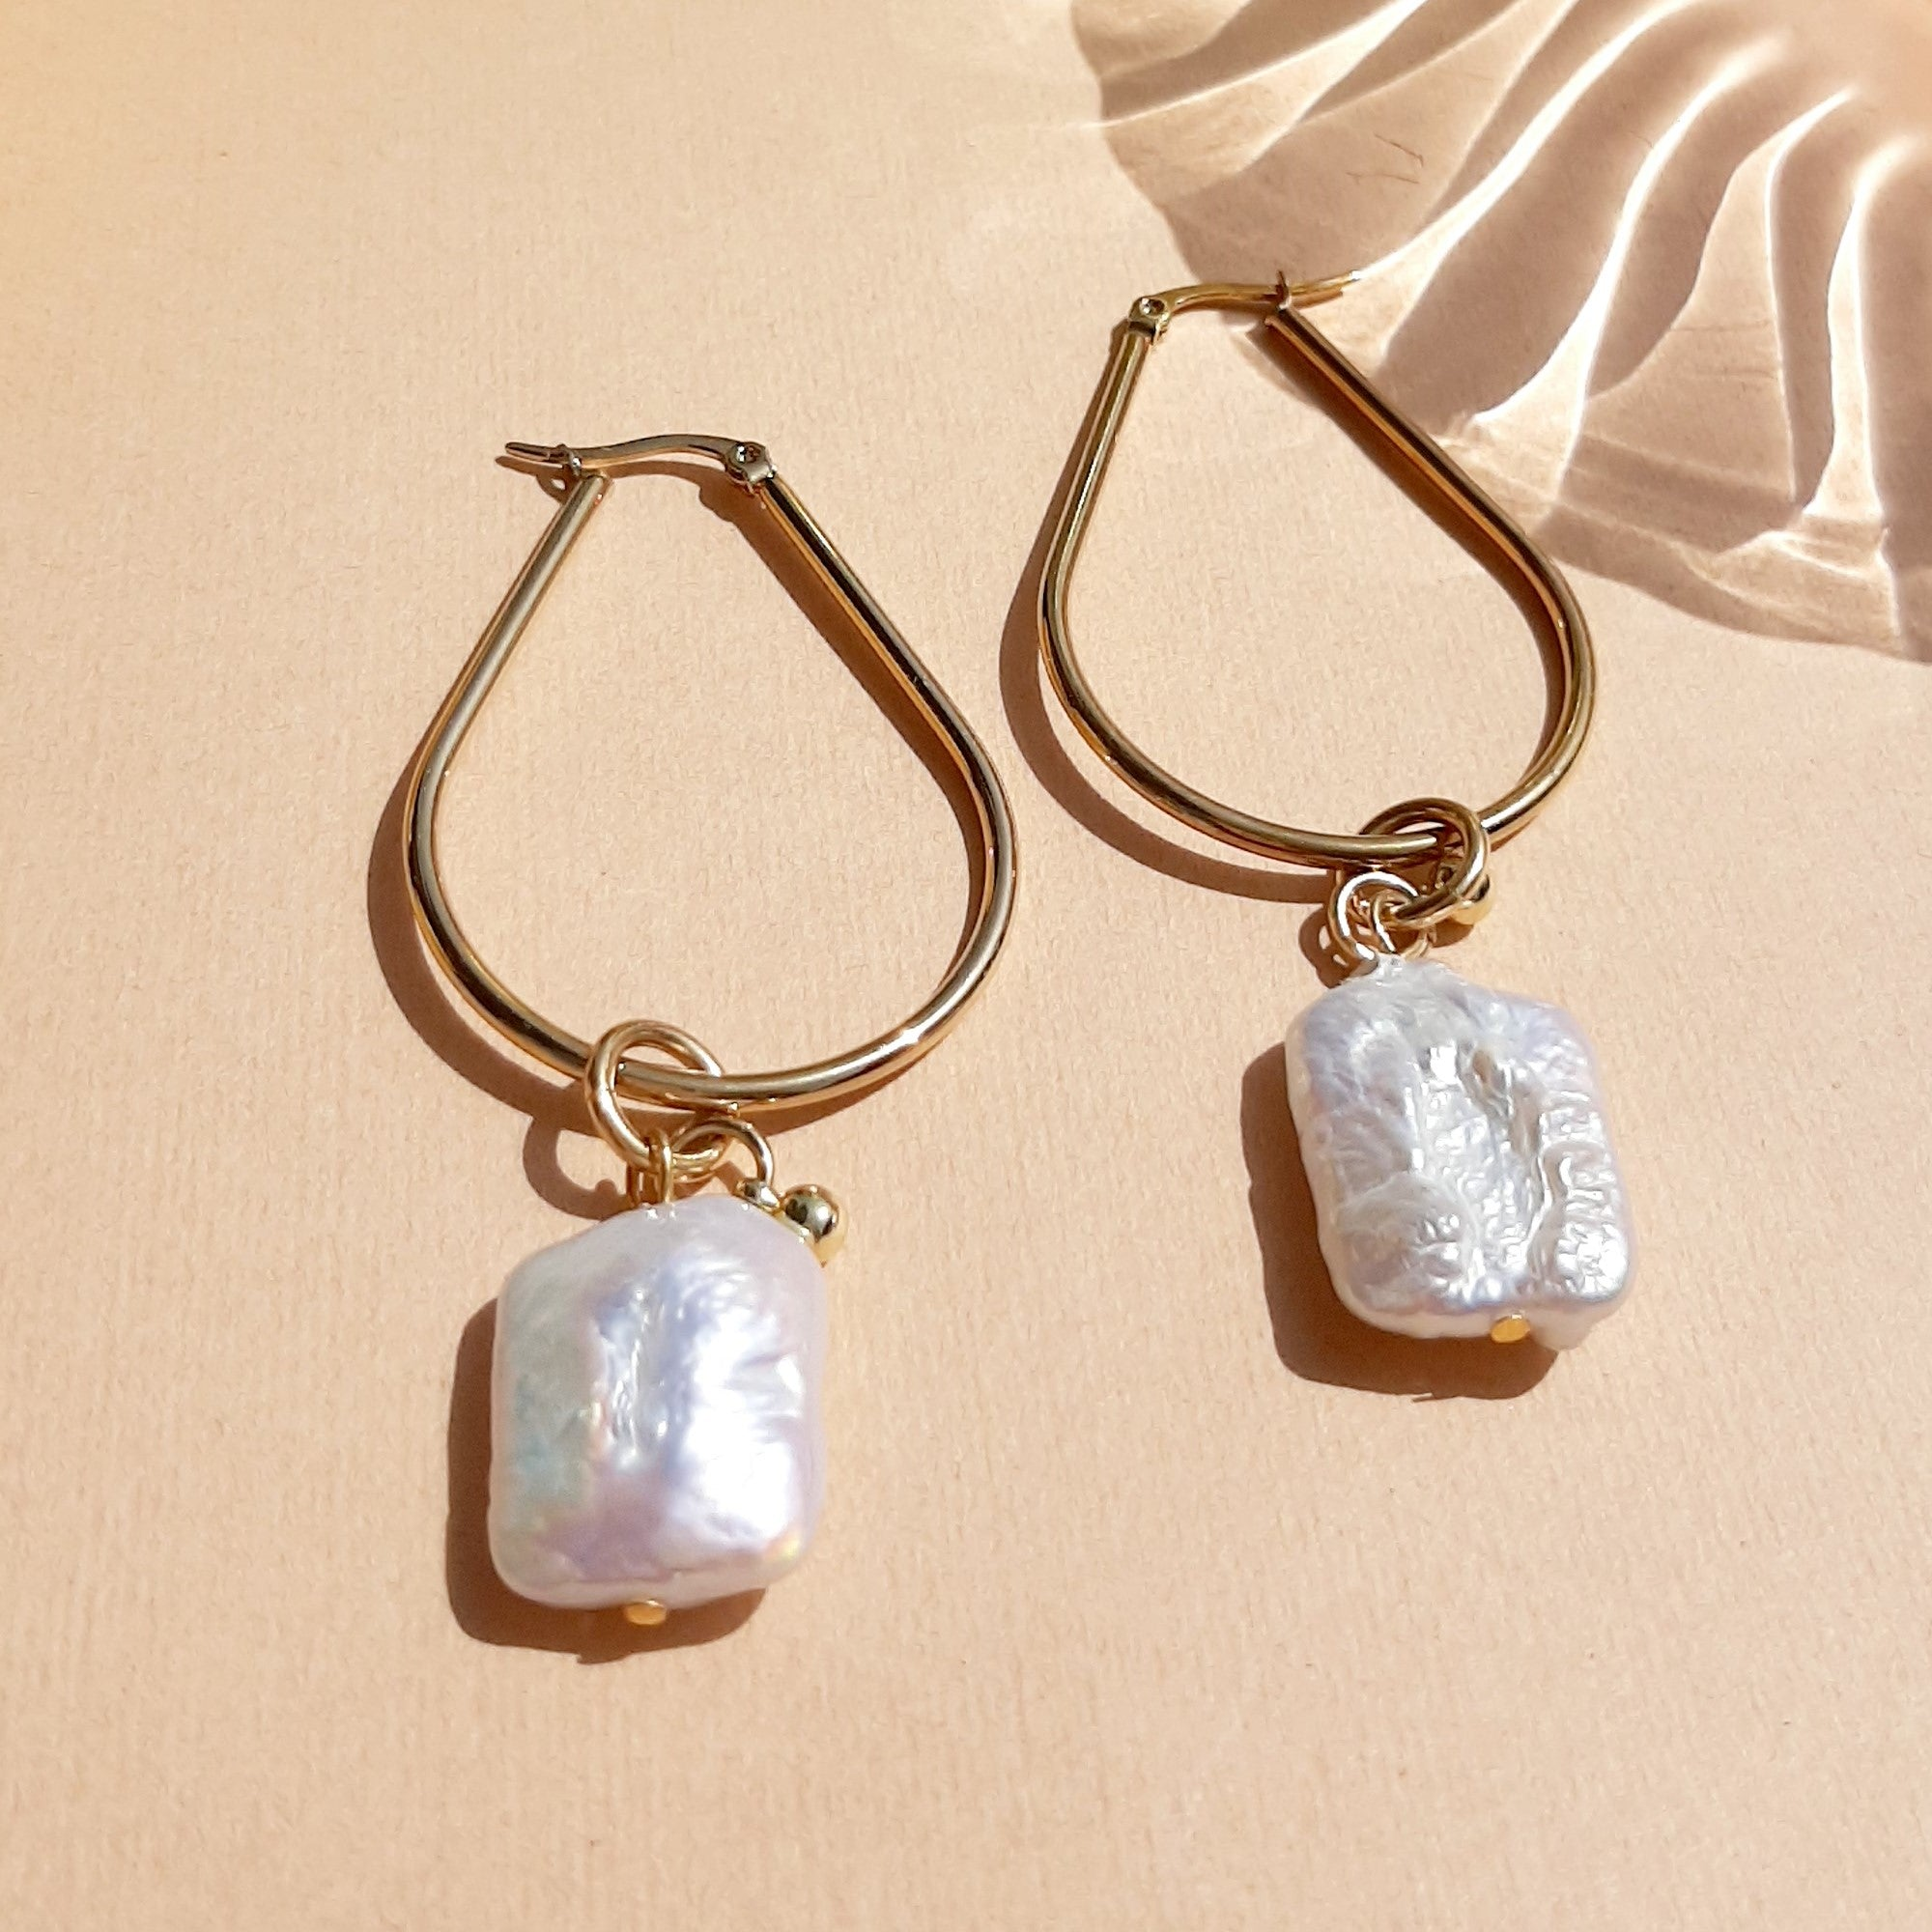 Bella Vita Drop Earrings & Pearl Pendant - Gold plated handmade Shelly Dahari - Shop with Sparkle & The Sinner